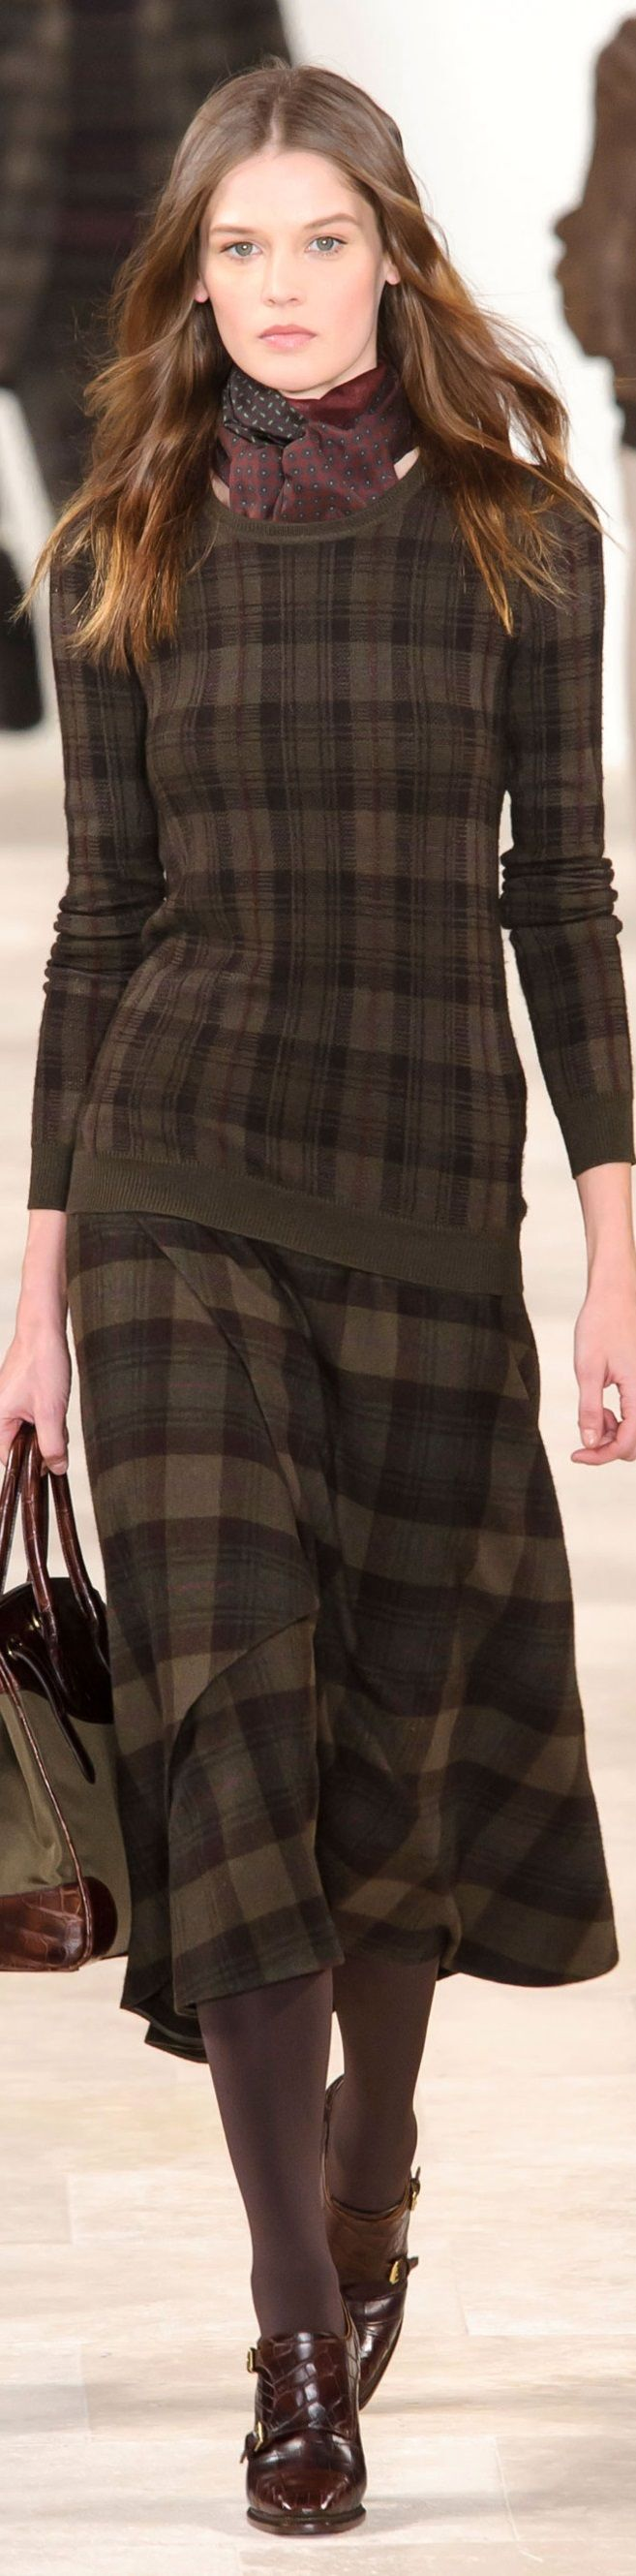 Brown Plaid Skirt. No to the plaid sweater. Yes to a Mulberry colored blouse.